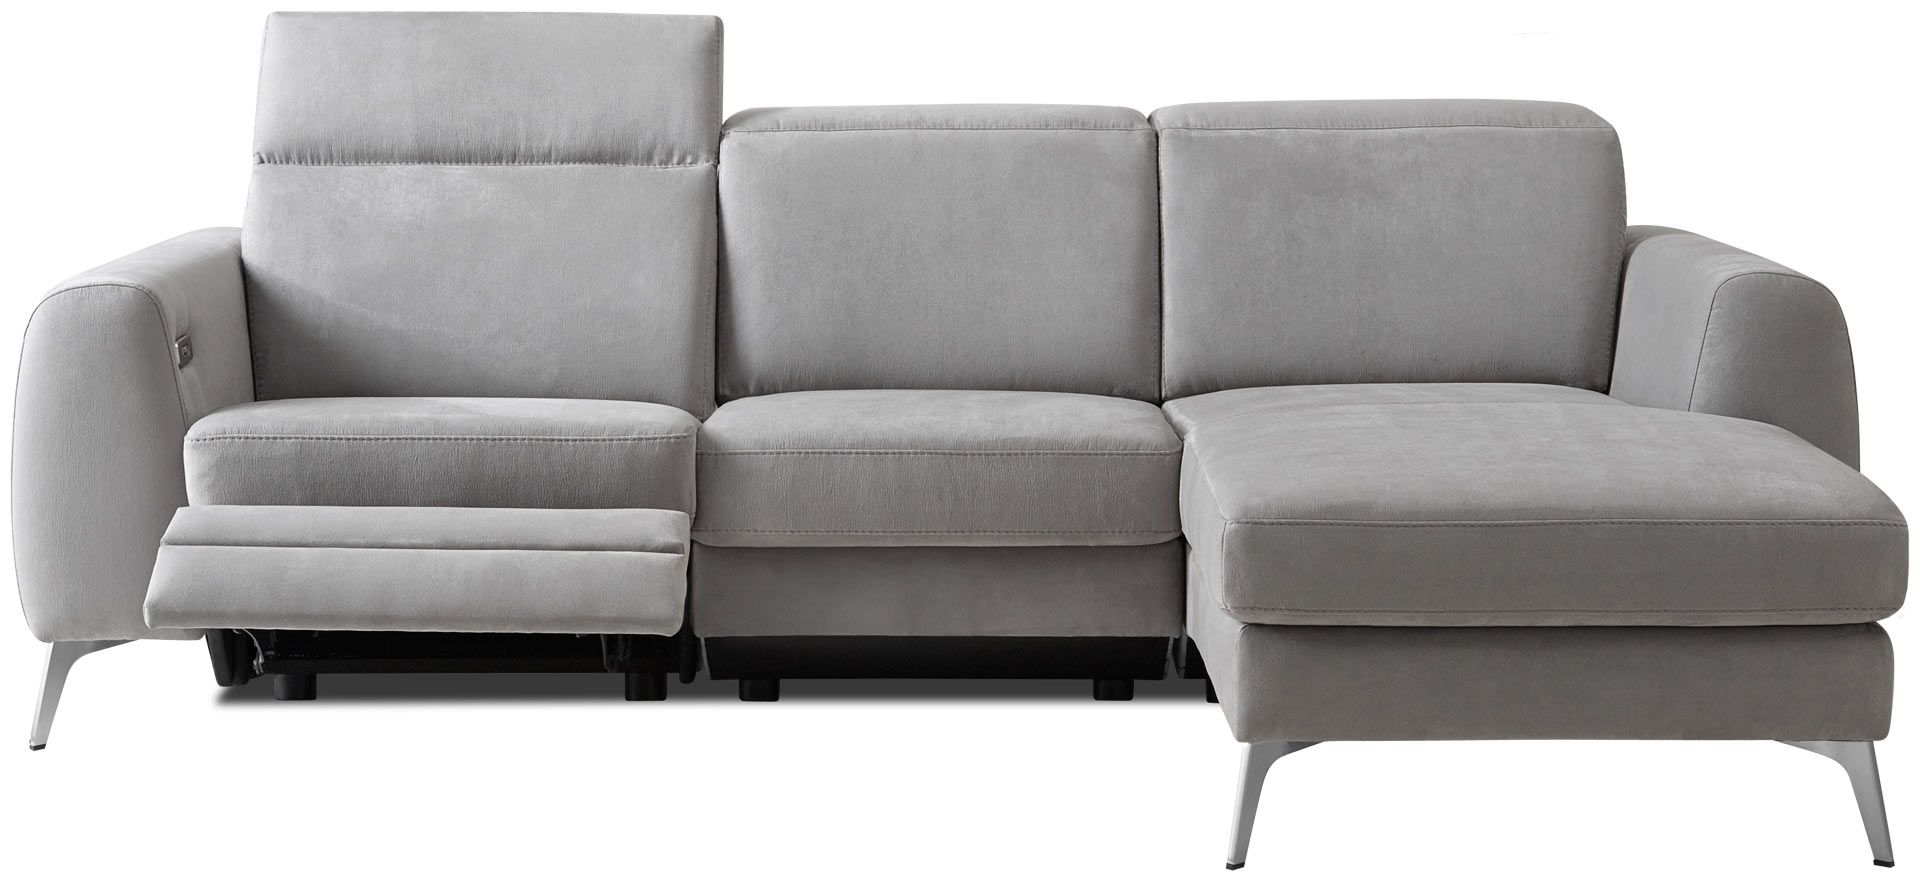 Modern Madison recliner sofas - Quality from BoConcept $8500 | For ...